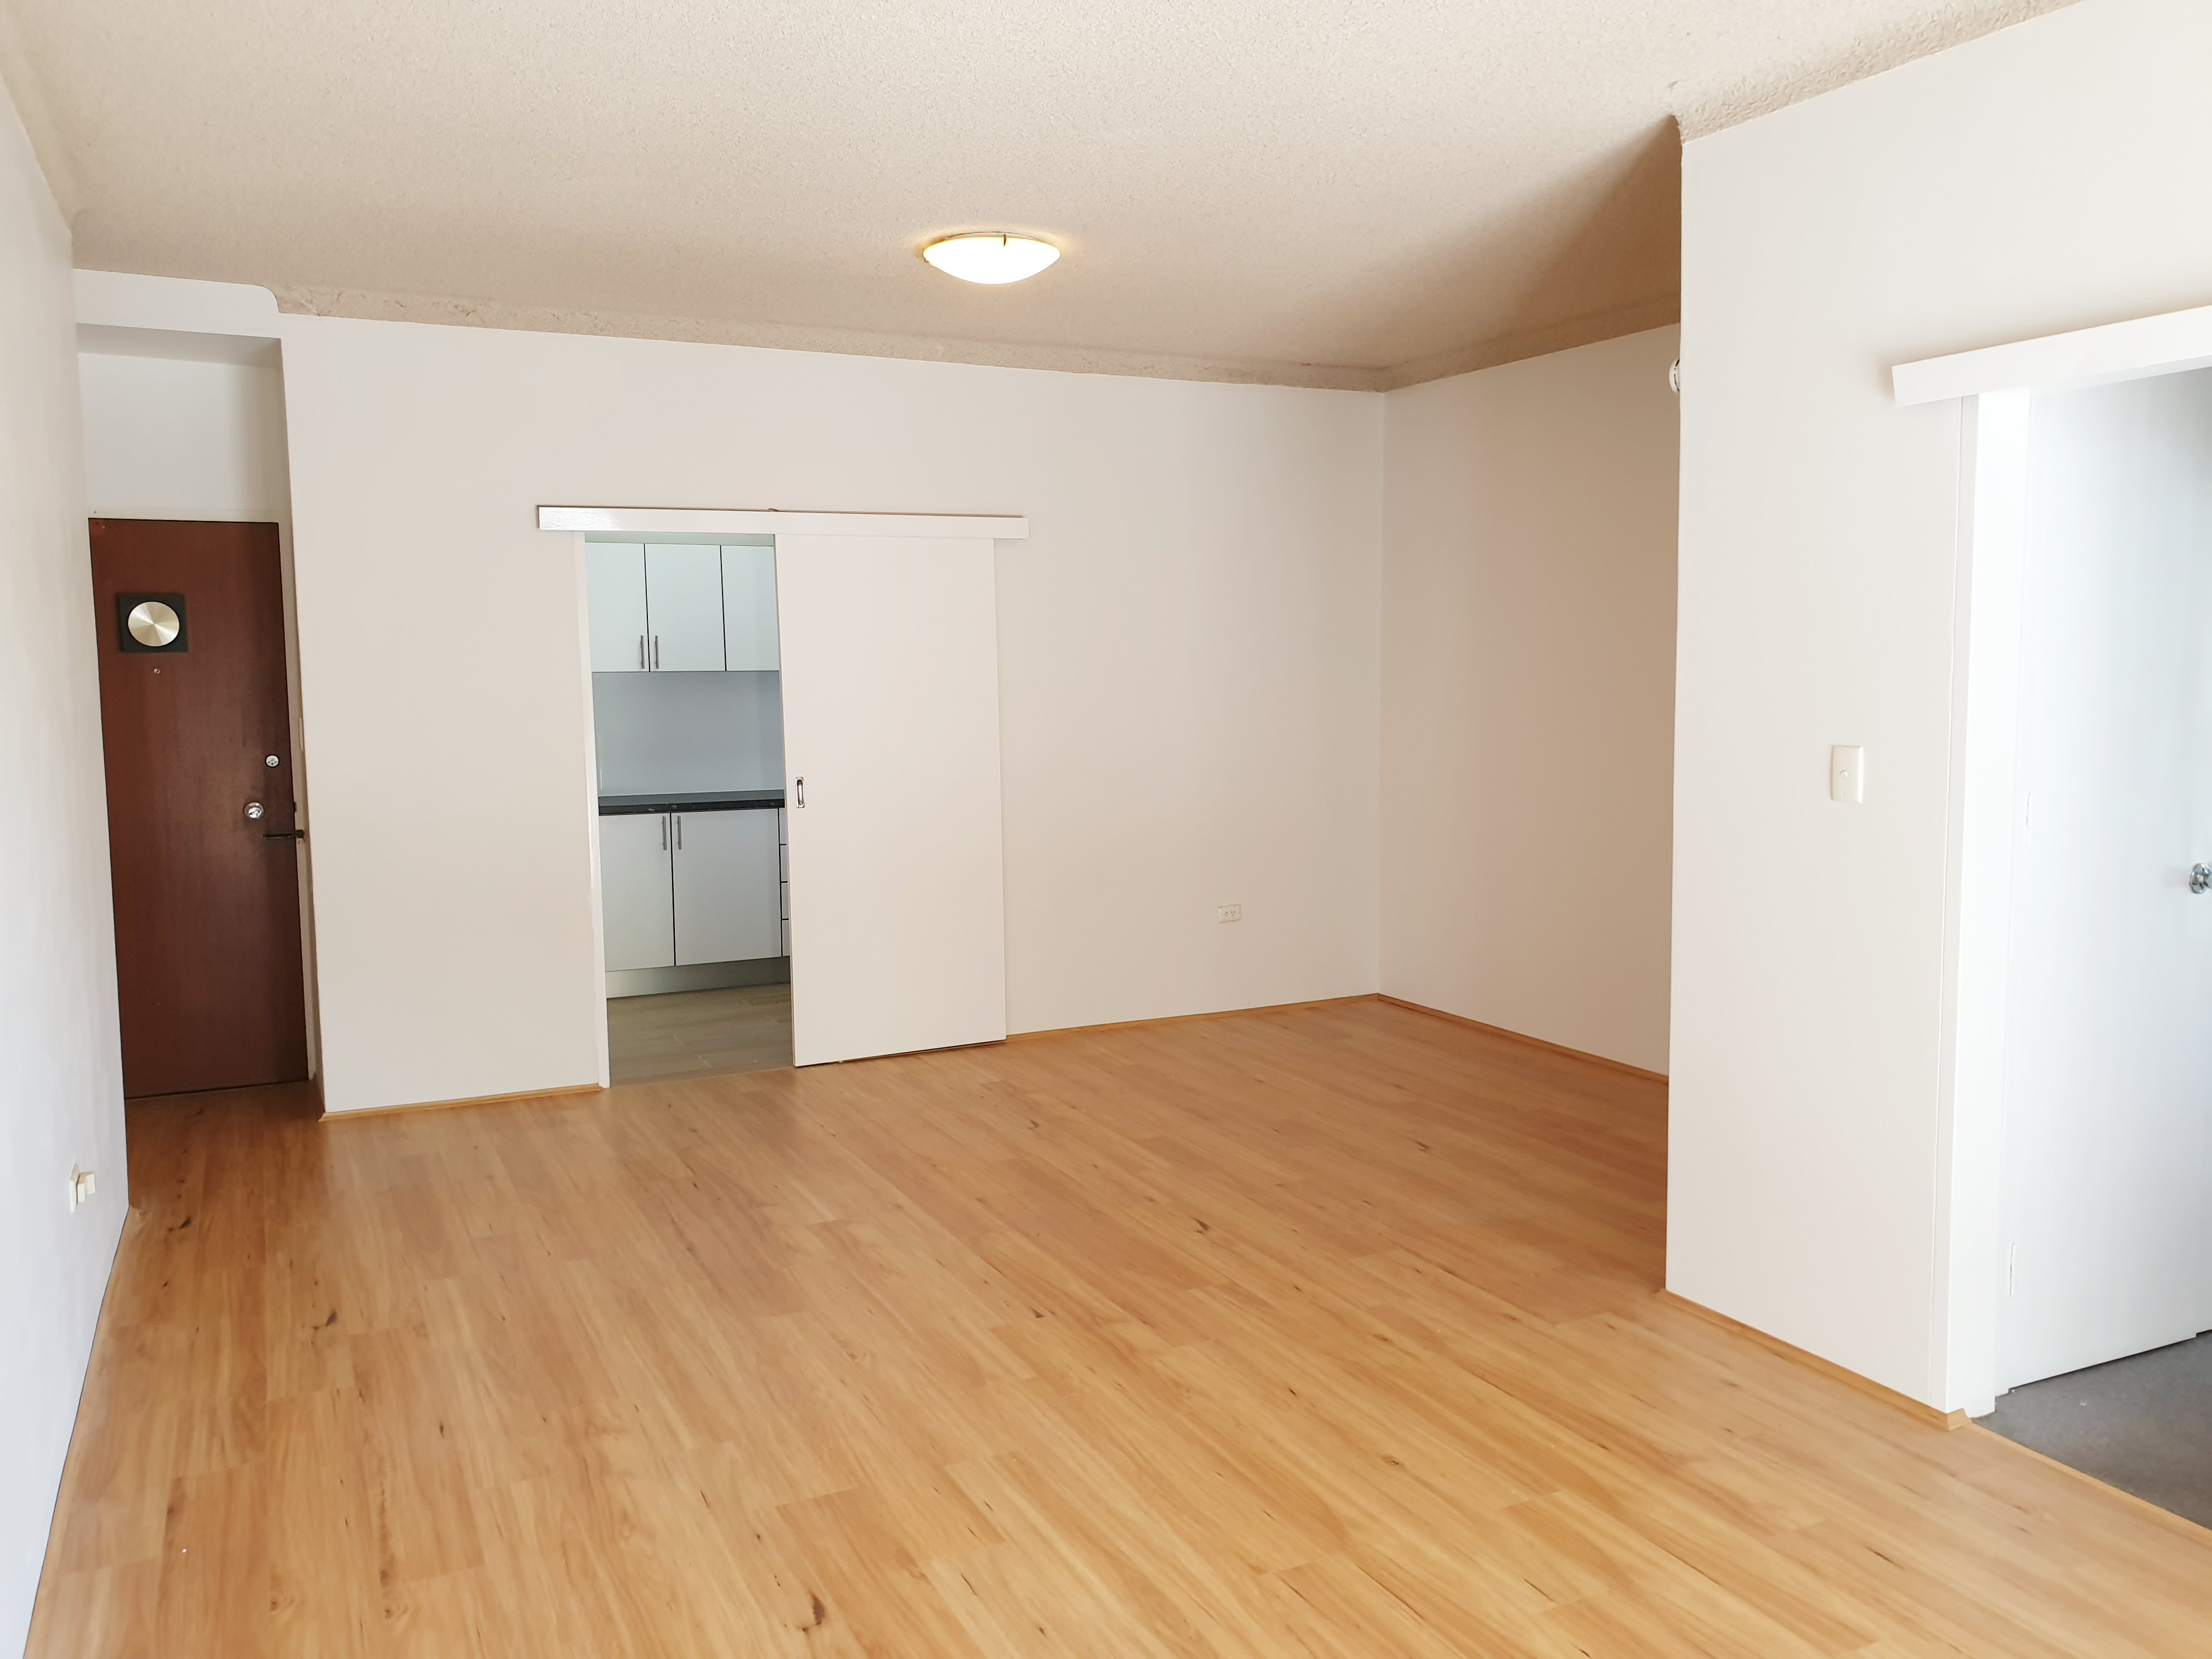 2 BEDROOM UNIT CLOSE TO ALLAWAH STATION